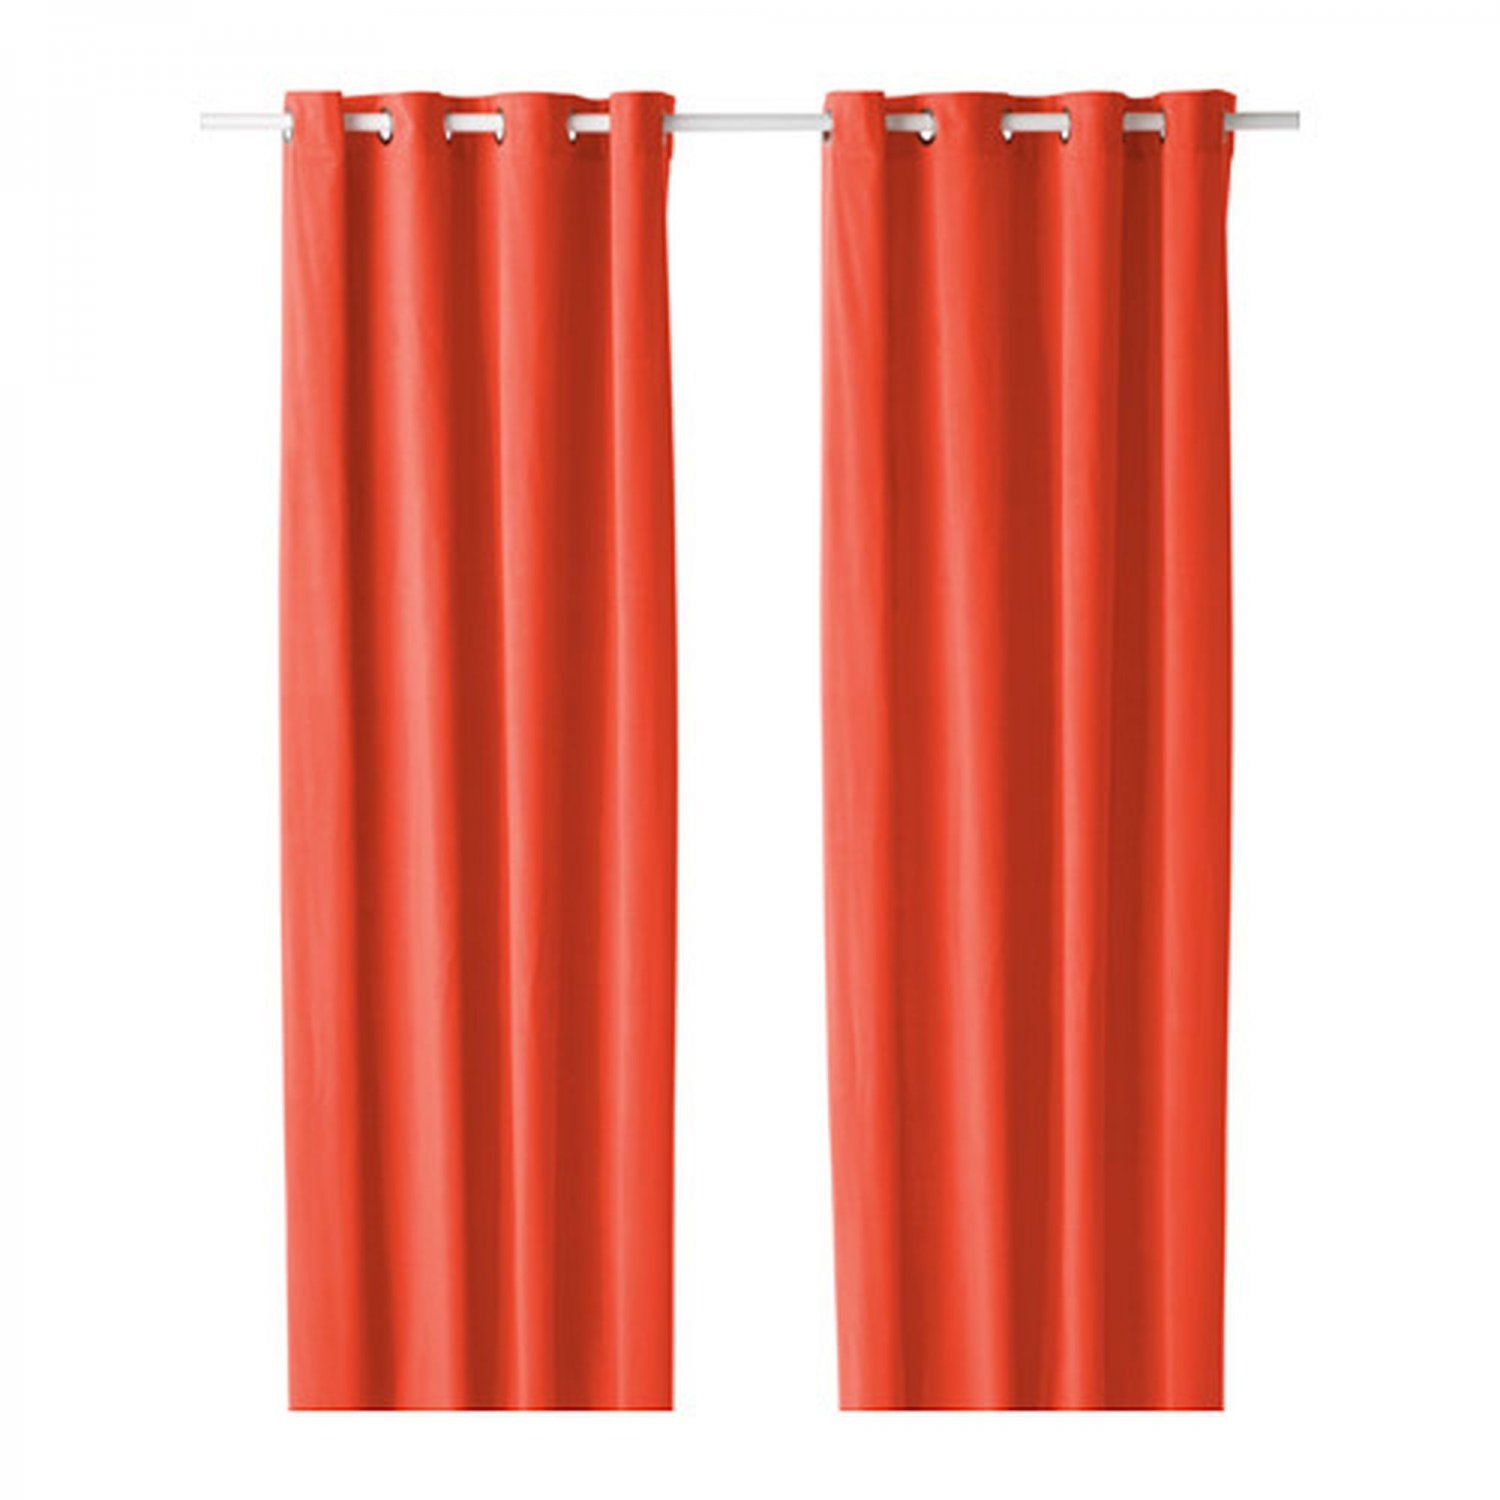 Orange Velvet Curtains Best Curtains 2017 Pertaining To Orange Velvet Curtains (View 7 of 15)